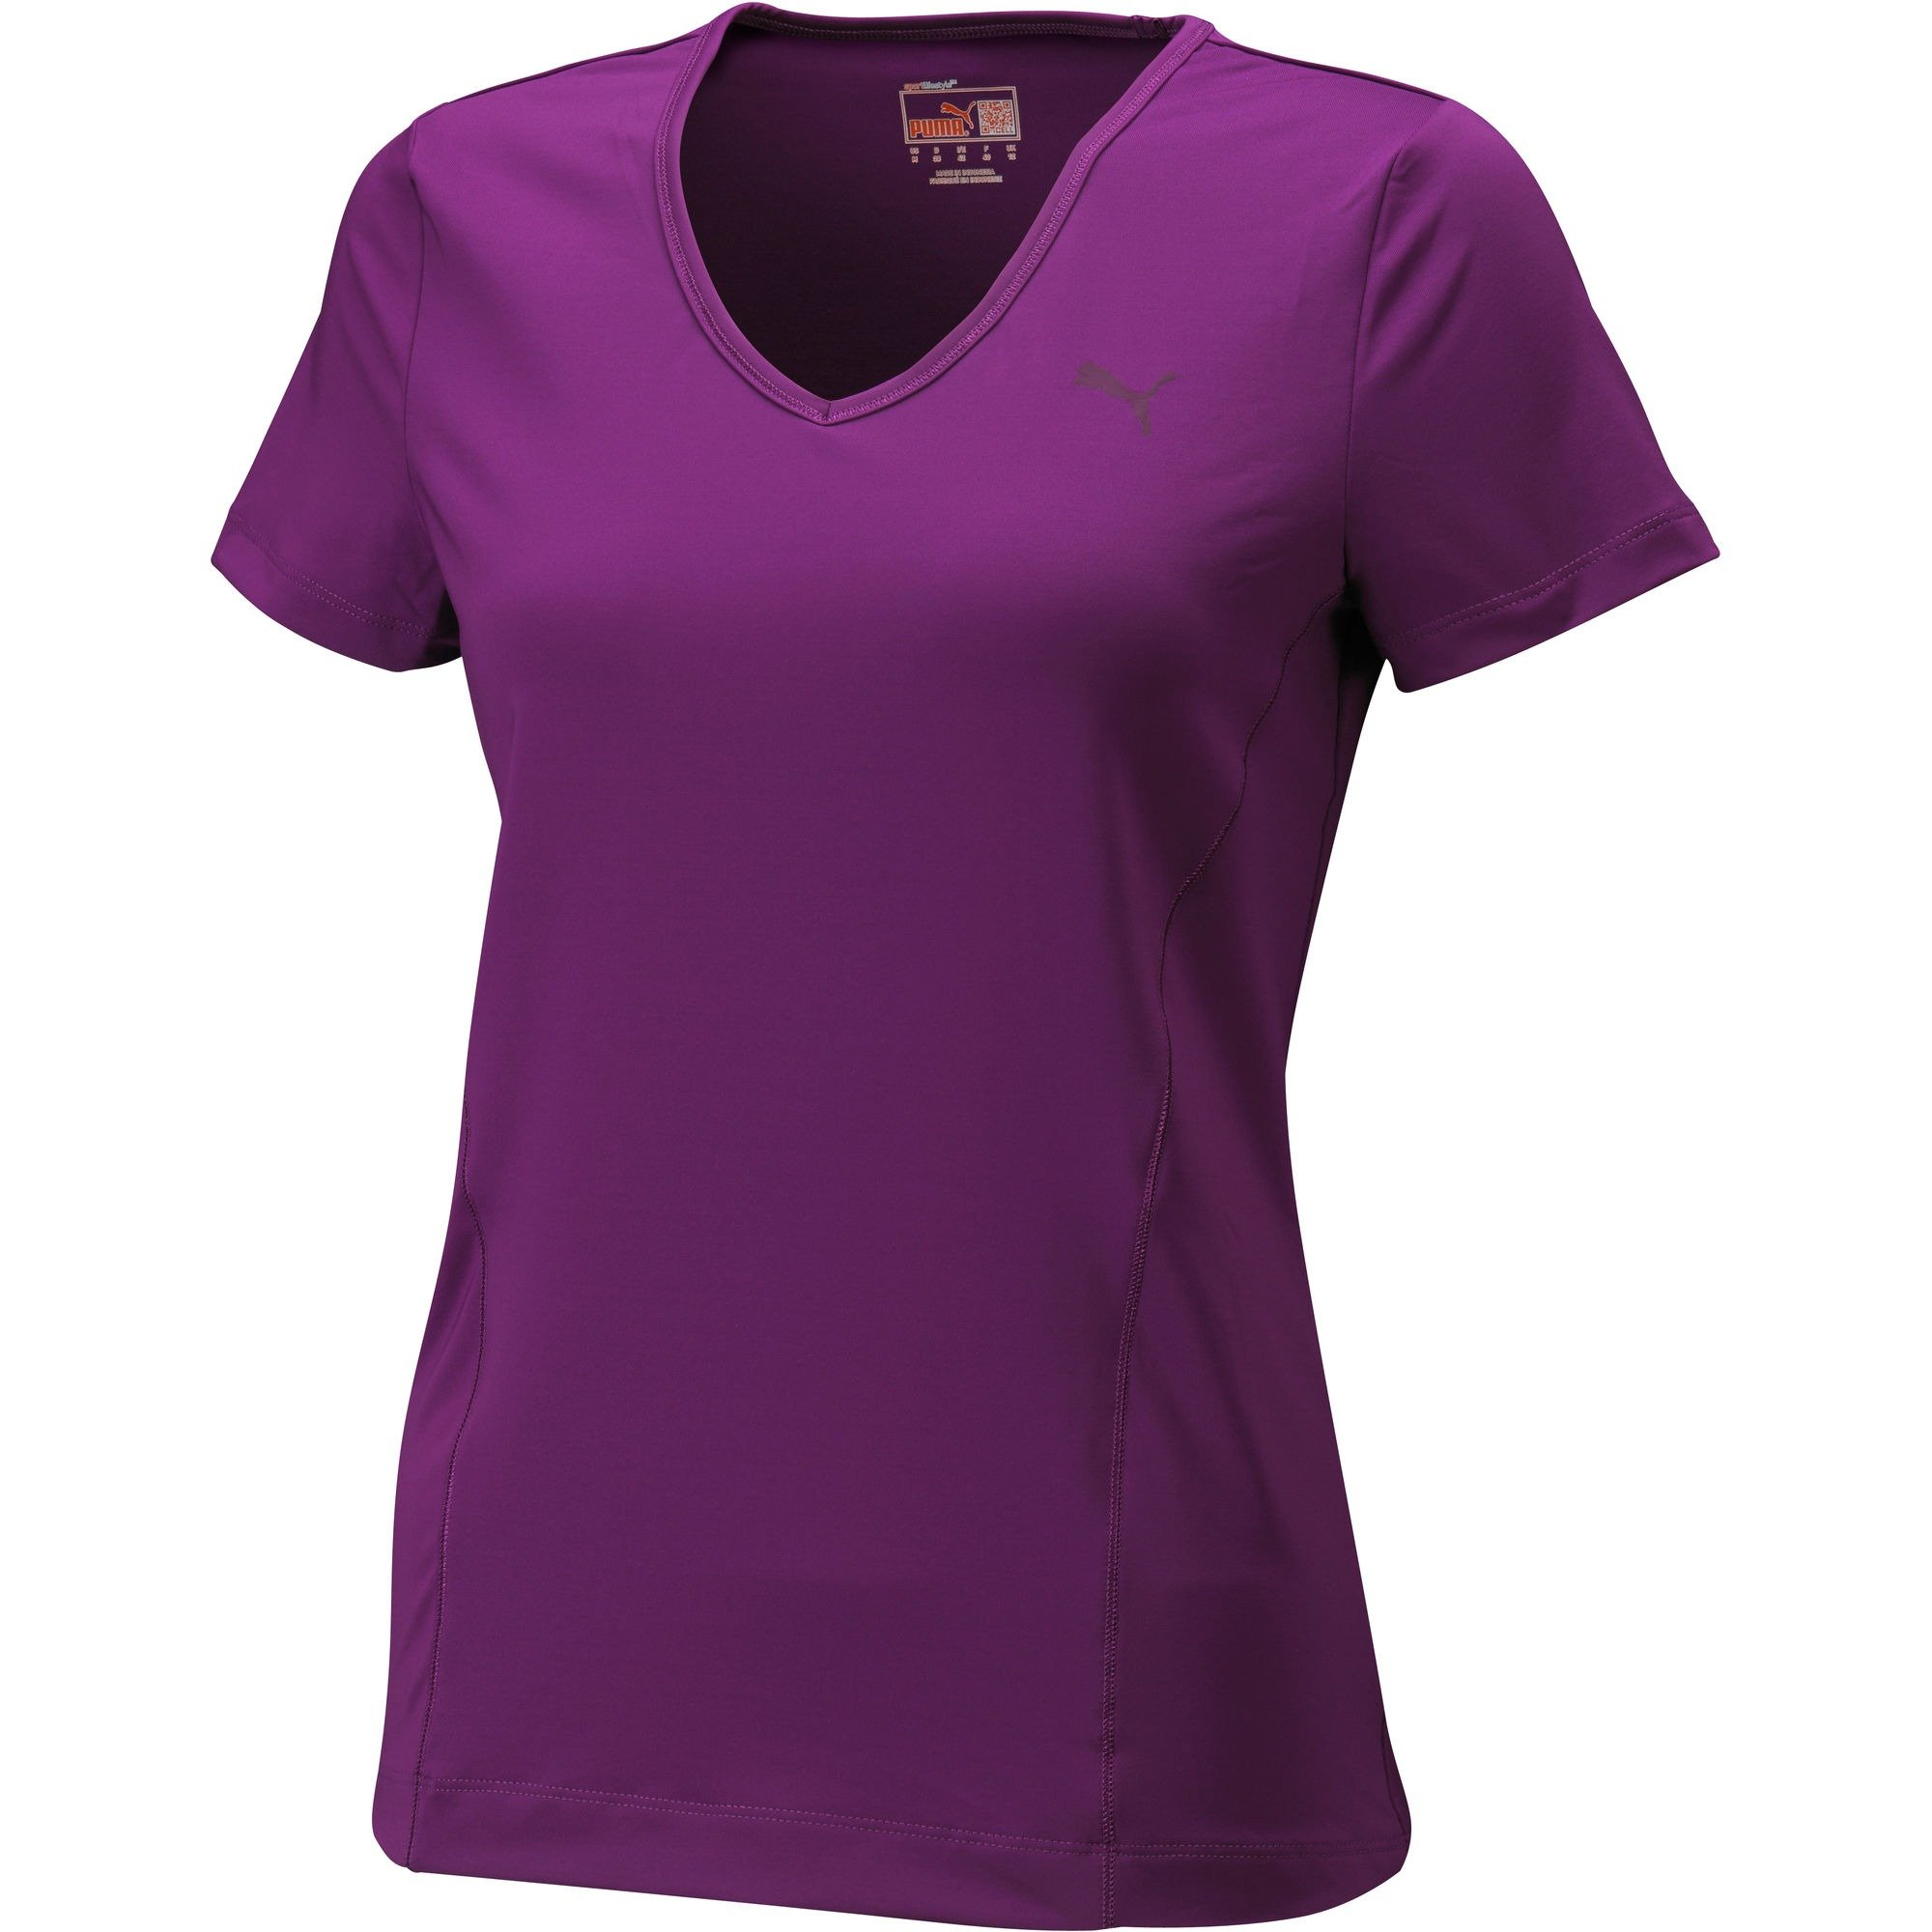 Puma Puma essential gym tee dame fra billigsport24